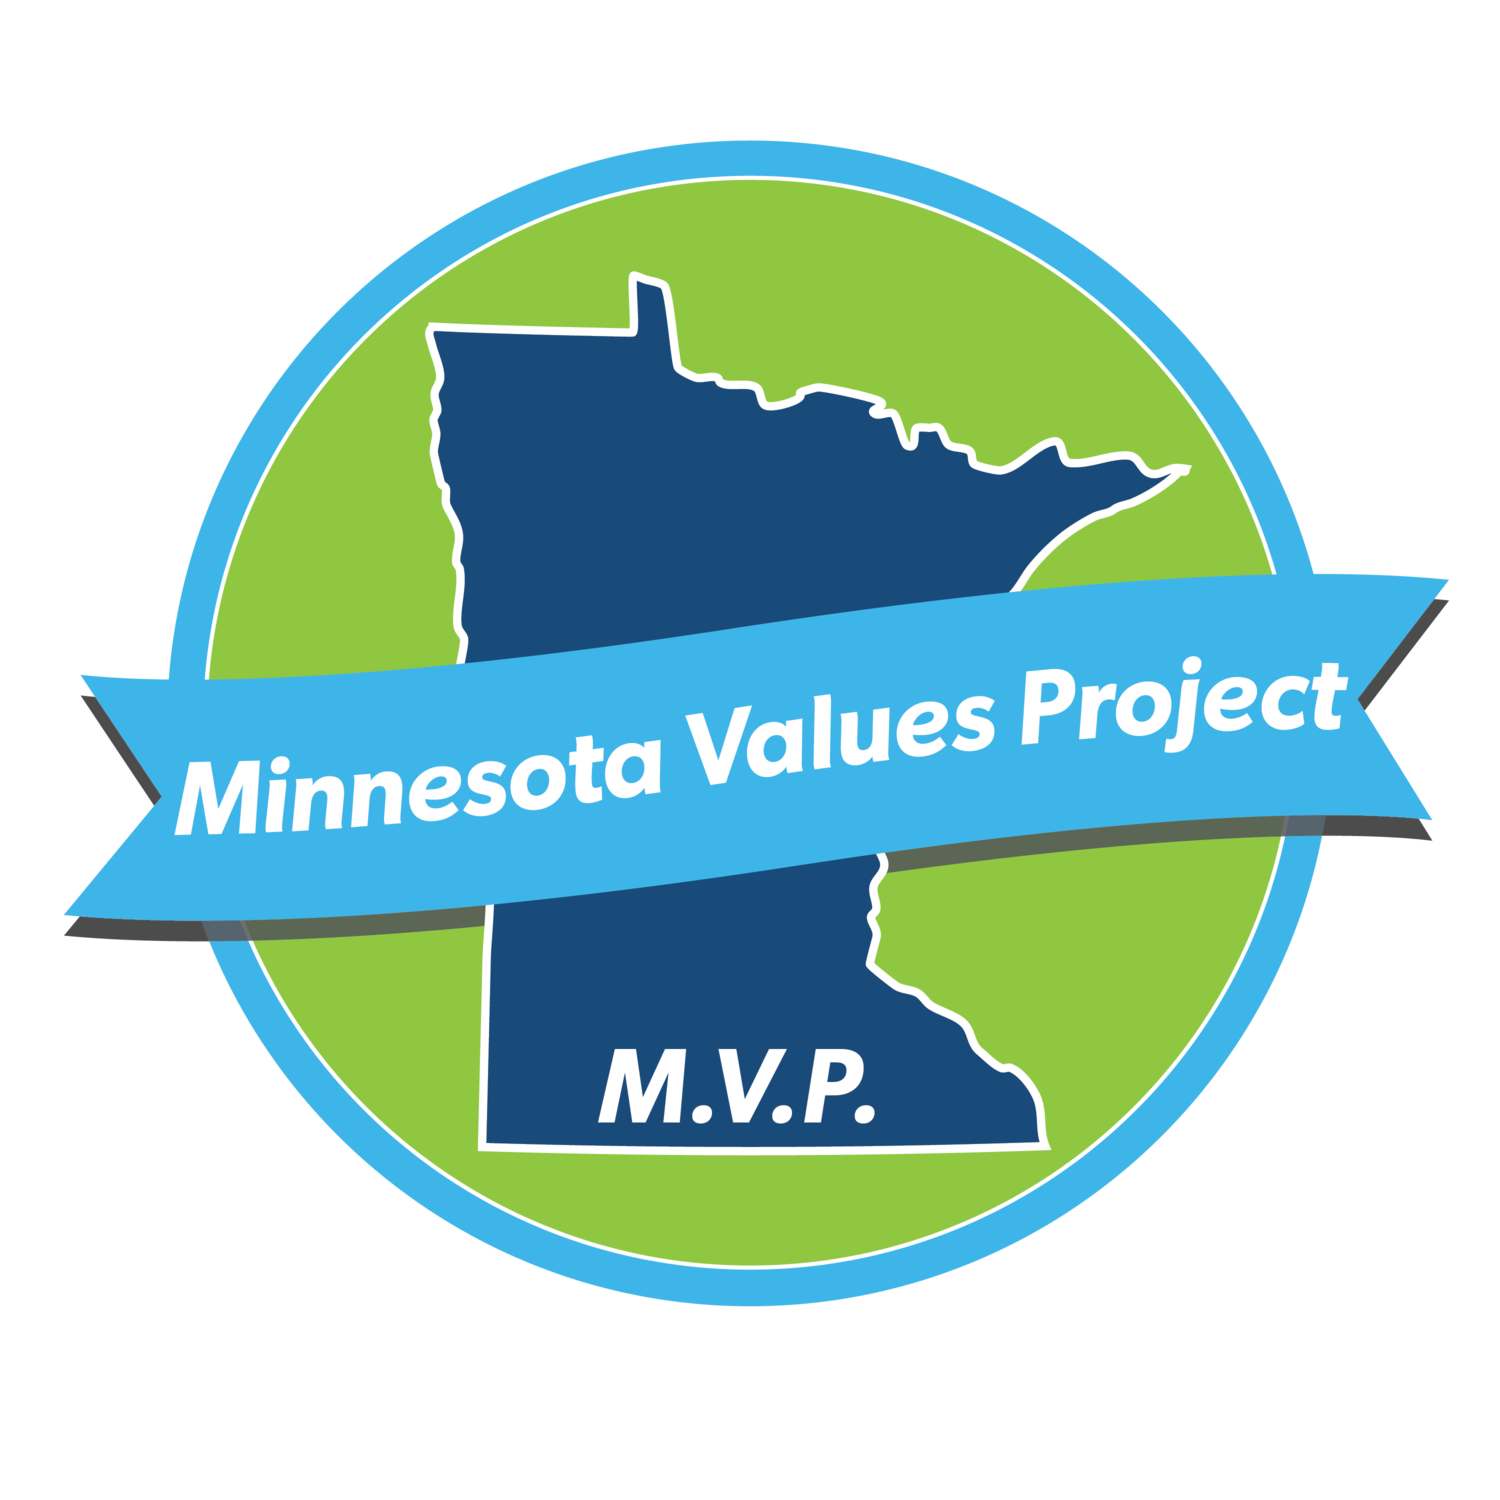 Minnesota Values Project